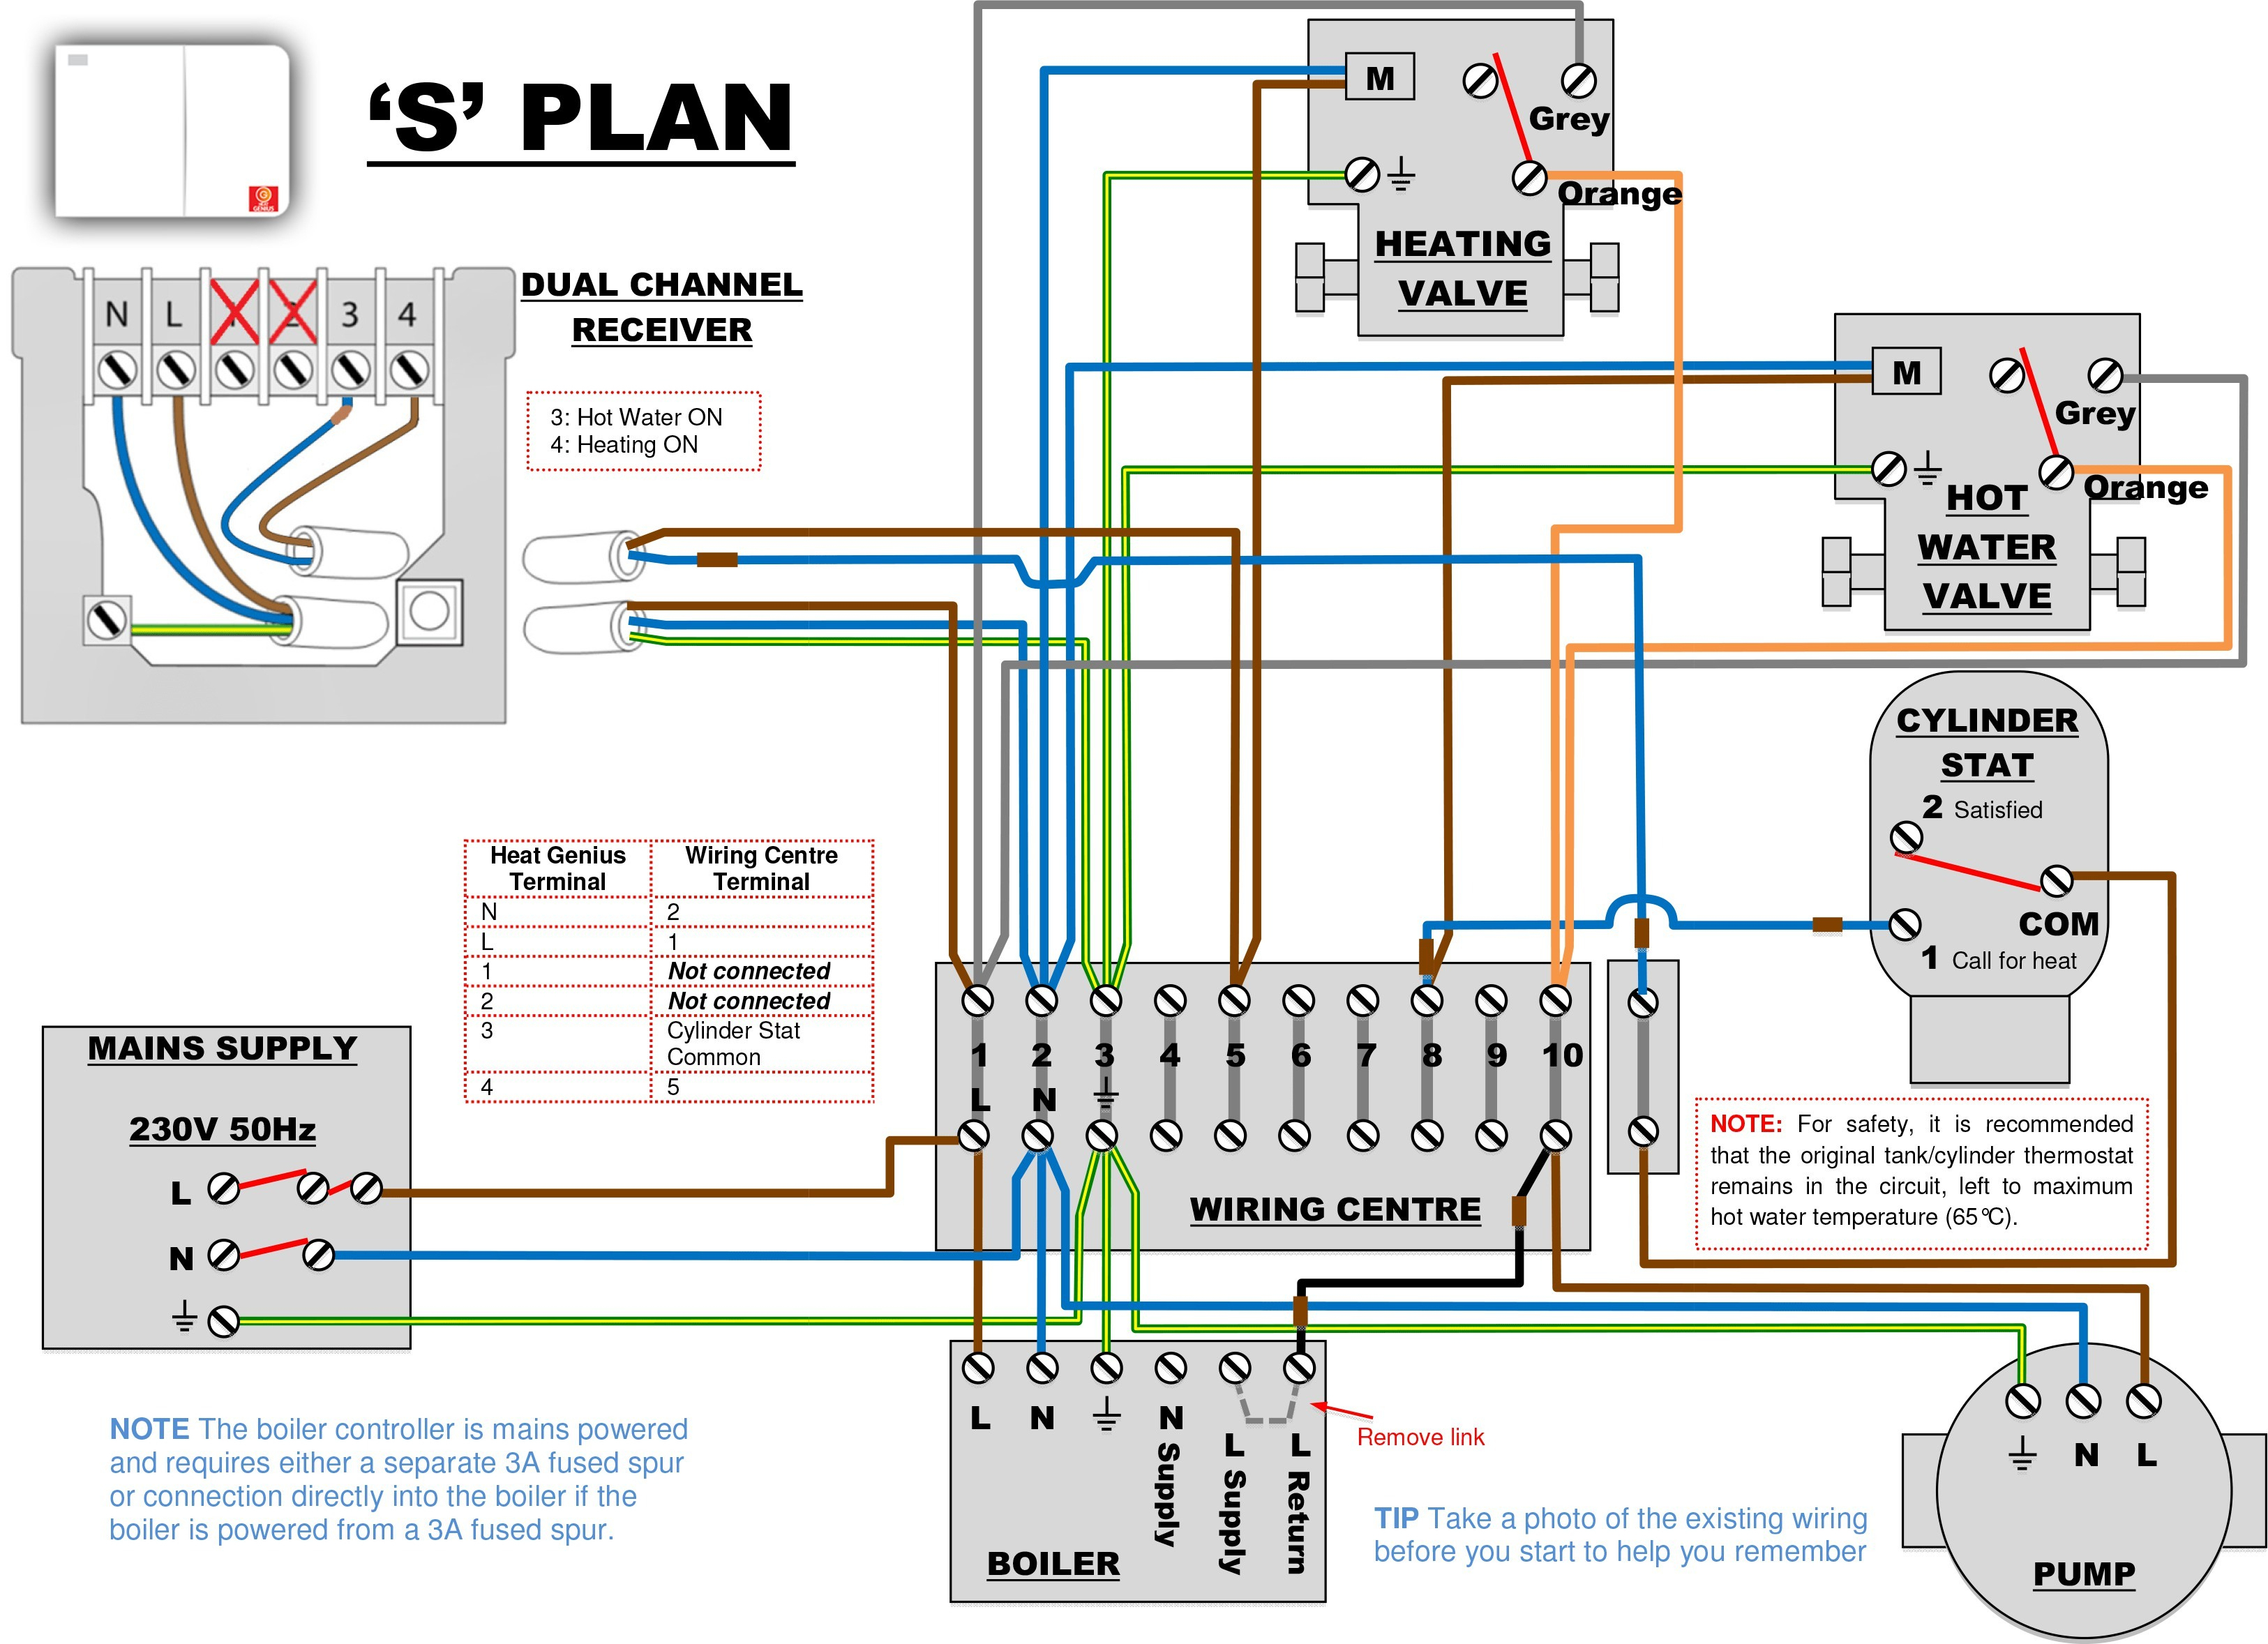 Nest Thermostat Heat Pump Wiring Diagram Heat Pump Thermostat Wiring - Nest Heat Pump Wiring Diagram